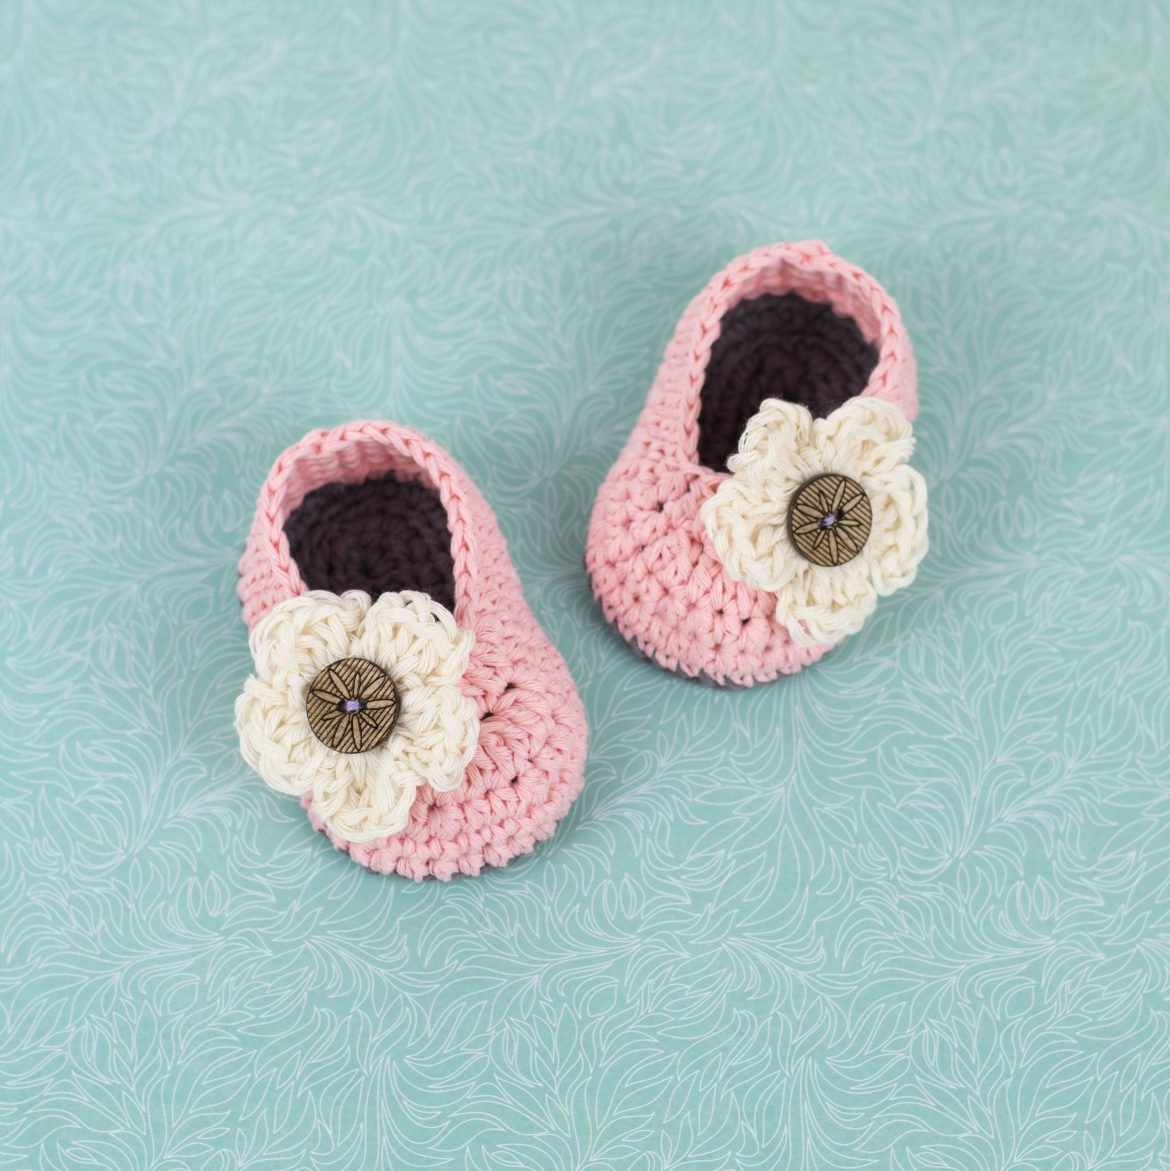 Free patterns croby patterns free pattern crochet baby booties with flower bankloansurffo Choice Image